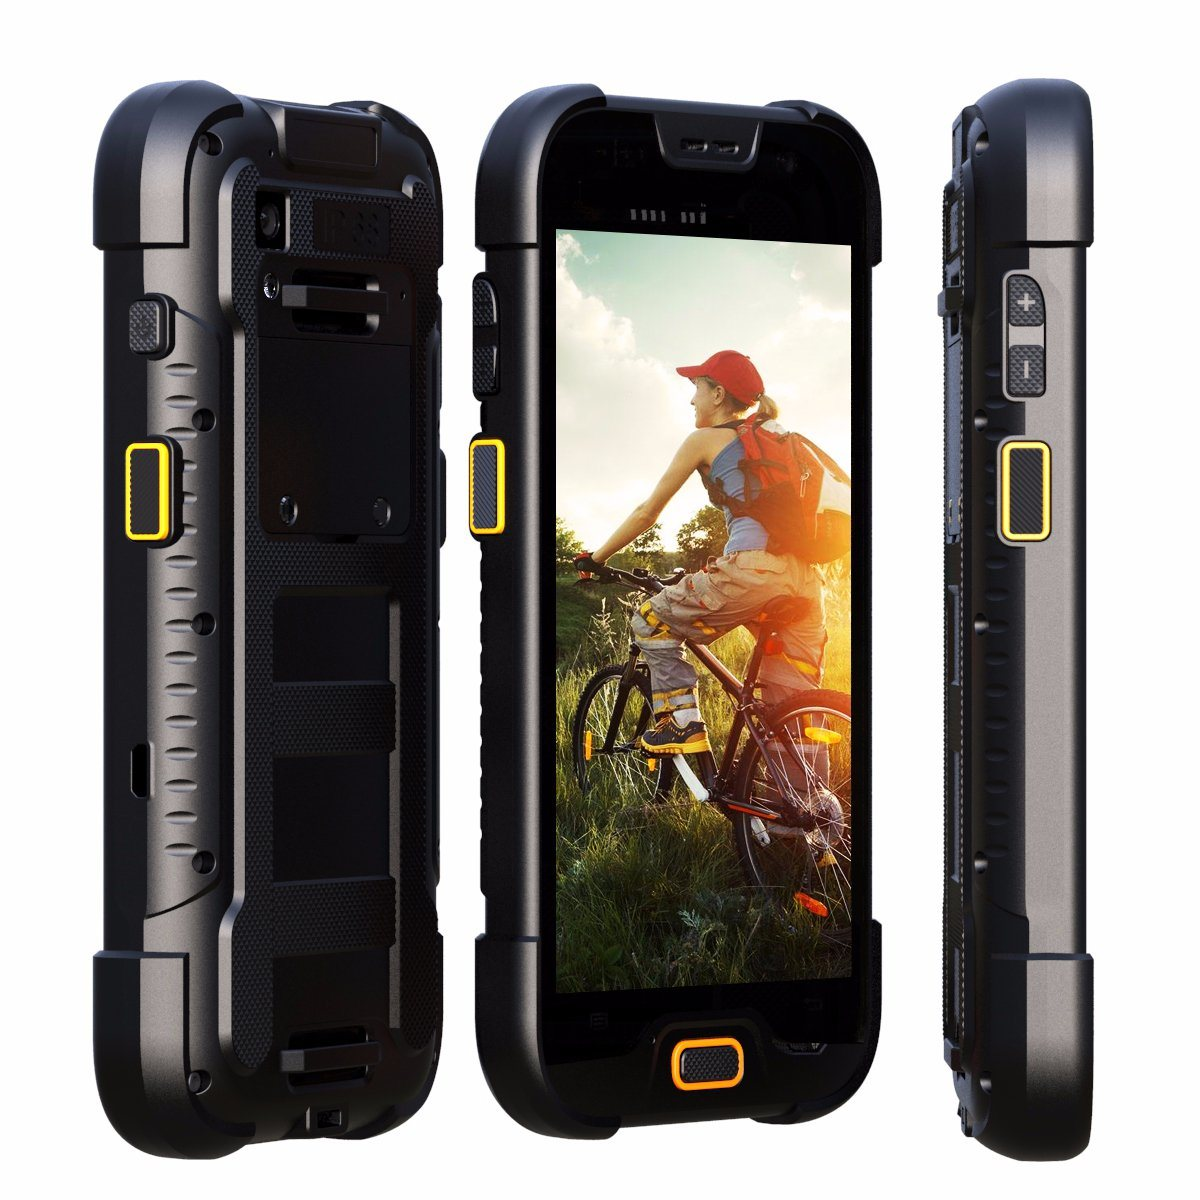 4G Rugged Smart Phone IP68 Protection with NFC Function